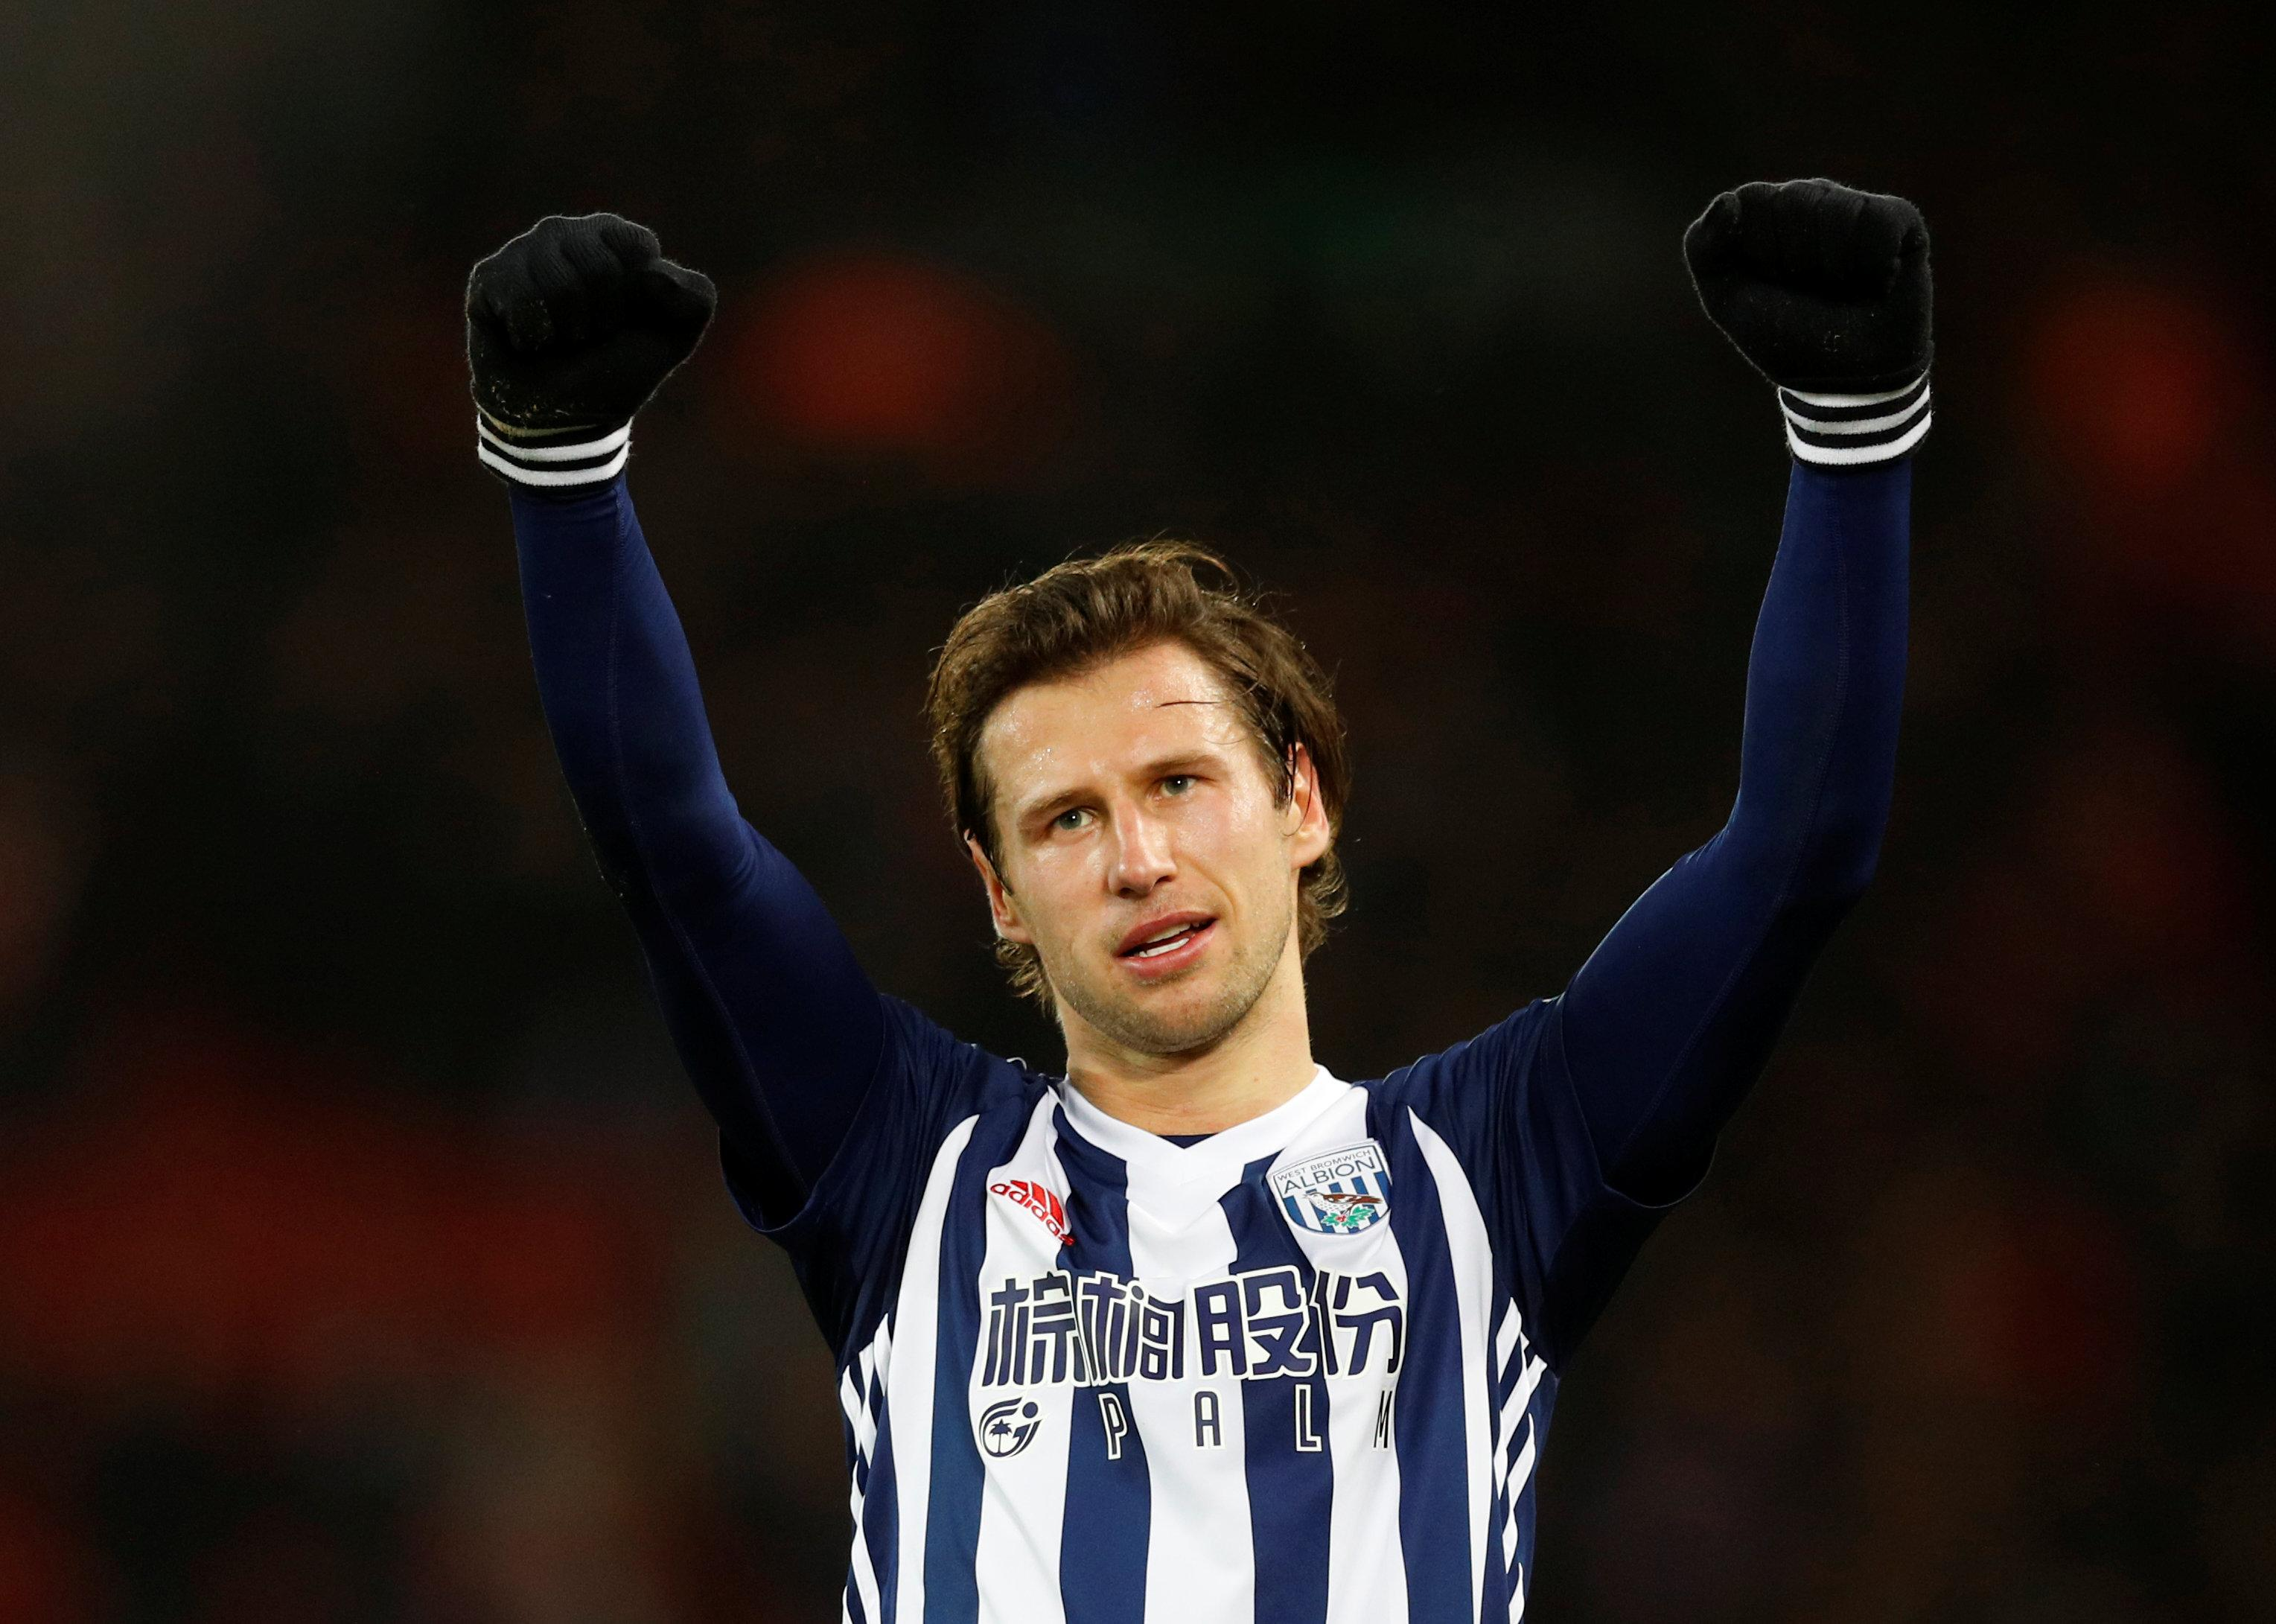 He was a bit of a flop for the Baggies